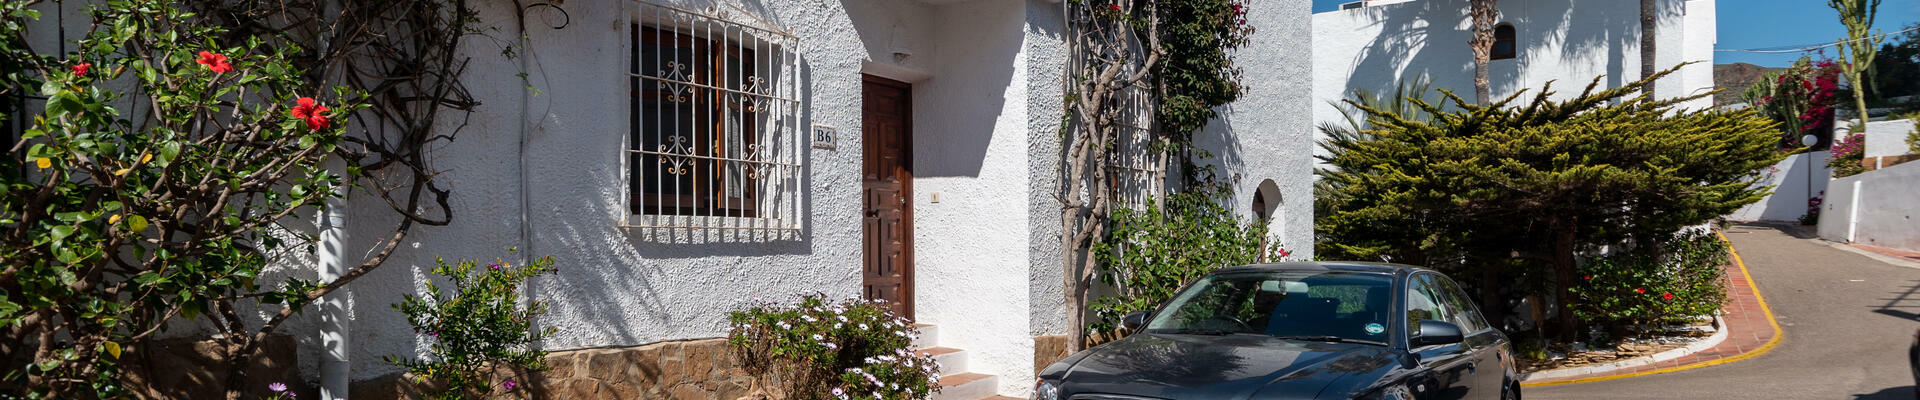 A1423: 2 Bedroom Apartment for Sale